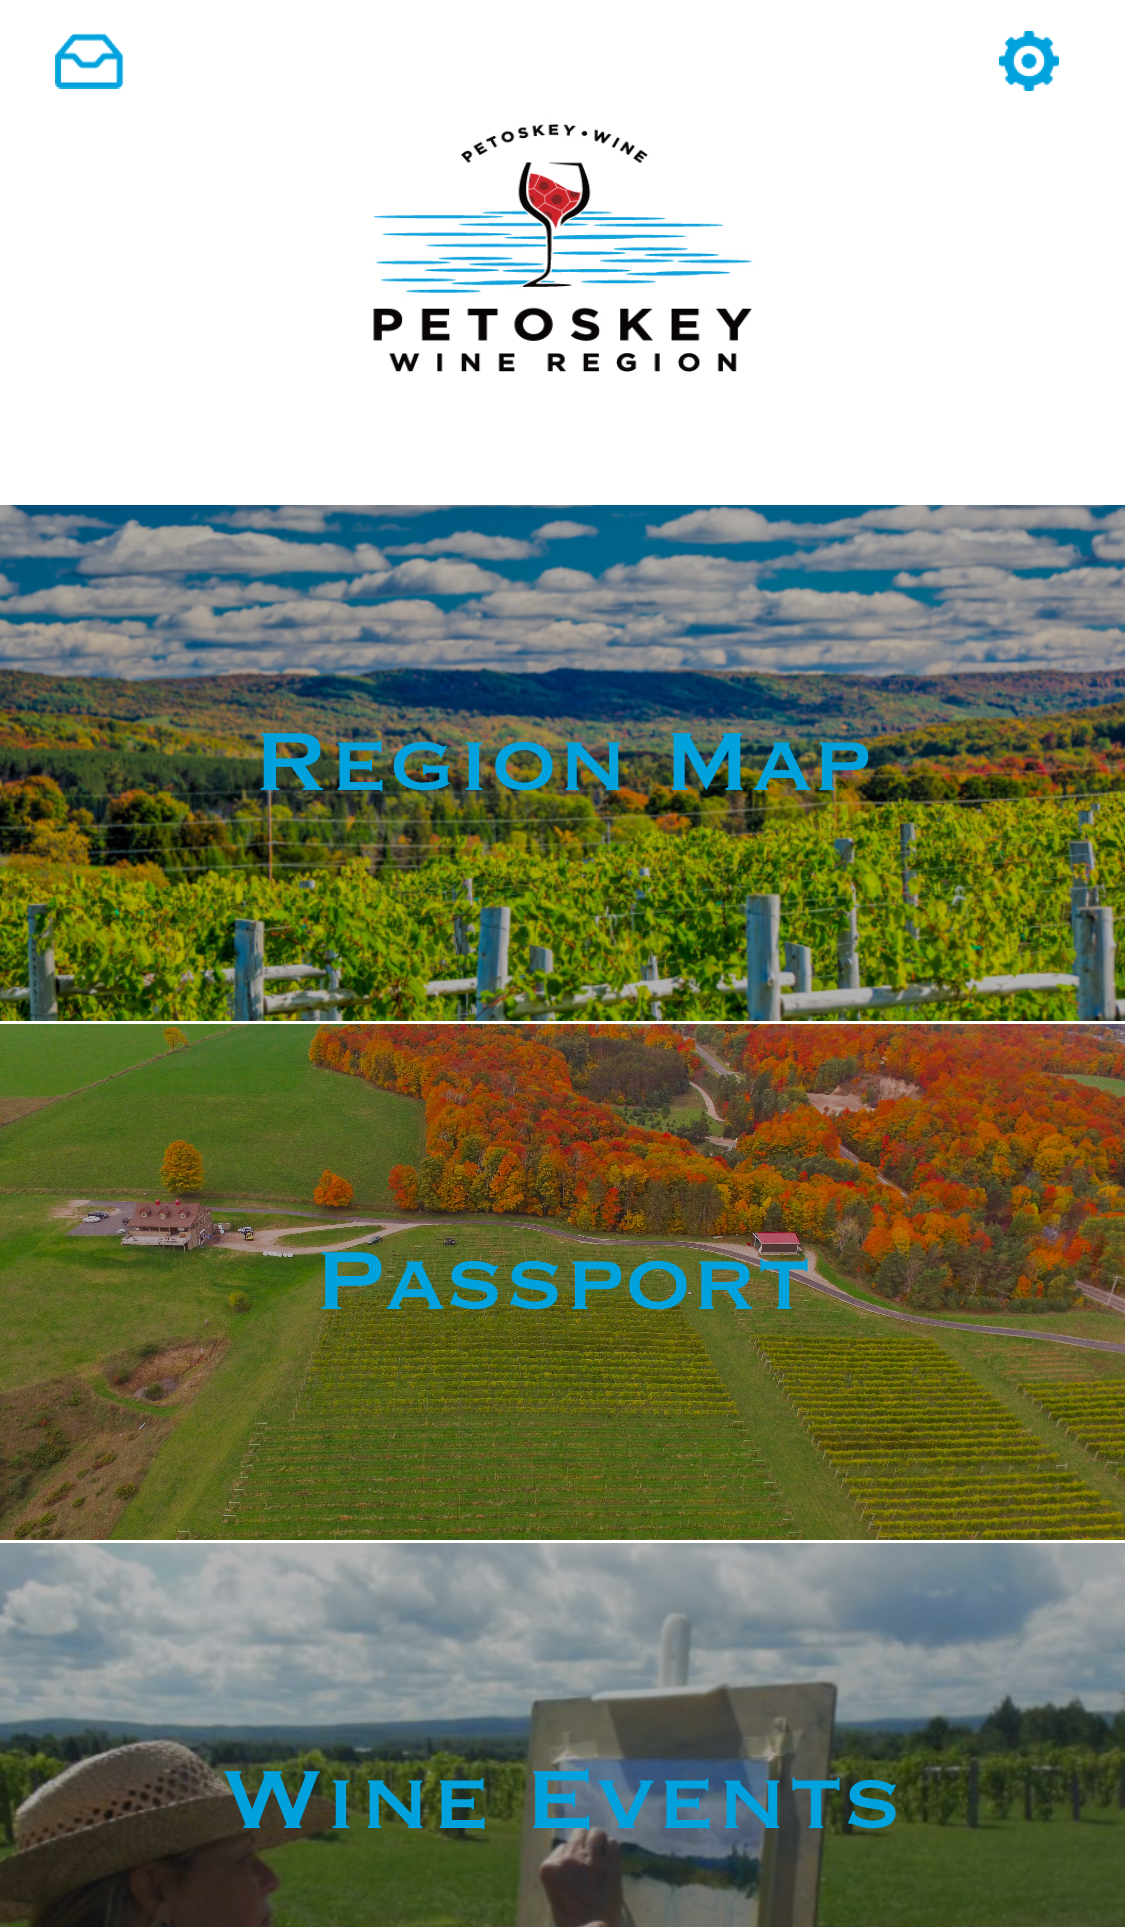 Now Available! - Purchase your Petoskey Wine Region mobile passport and get exclusive discounts for you plus one guest at each winery in the region! Redeem all wine region coupons and receive 2 Wine Region wine glasses. Cost is $59. Check out the details below for all winery offerings.Download the Petoskey Wine Region Mobile App and purchase through the passport tab.